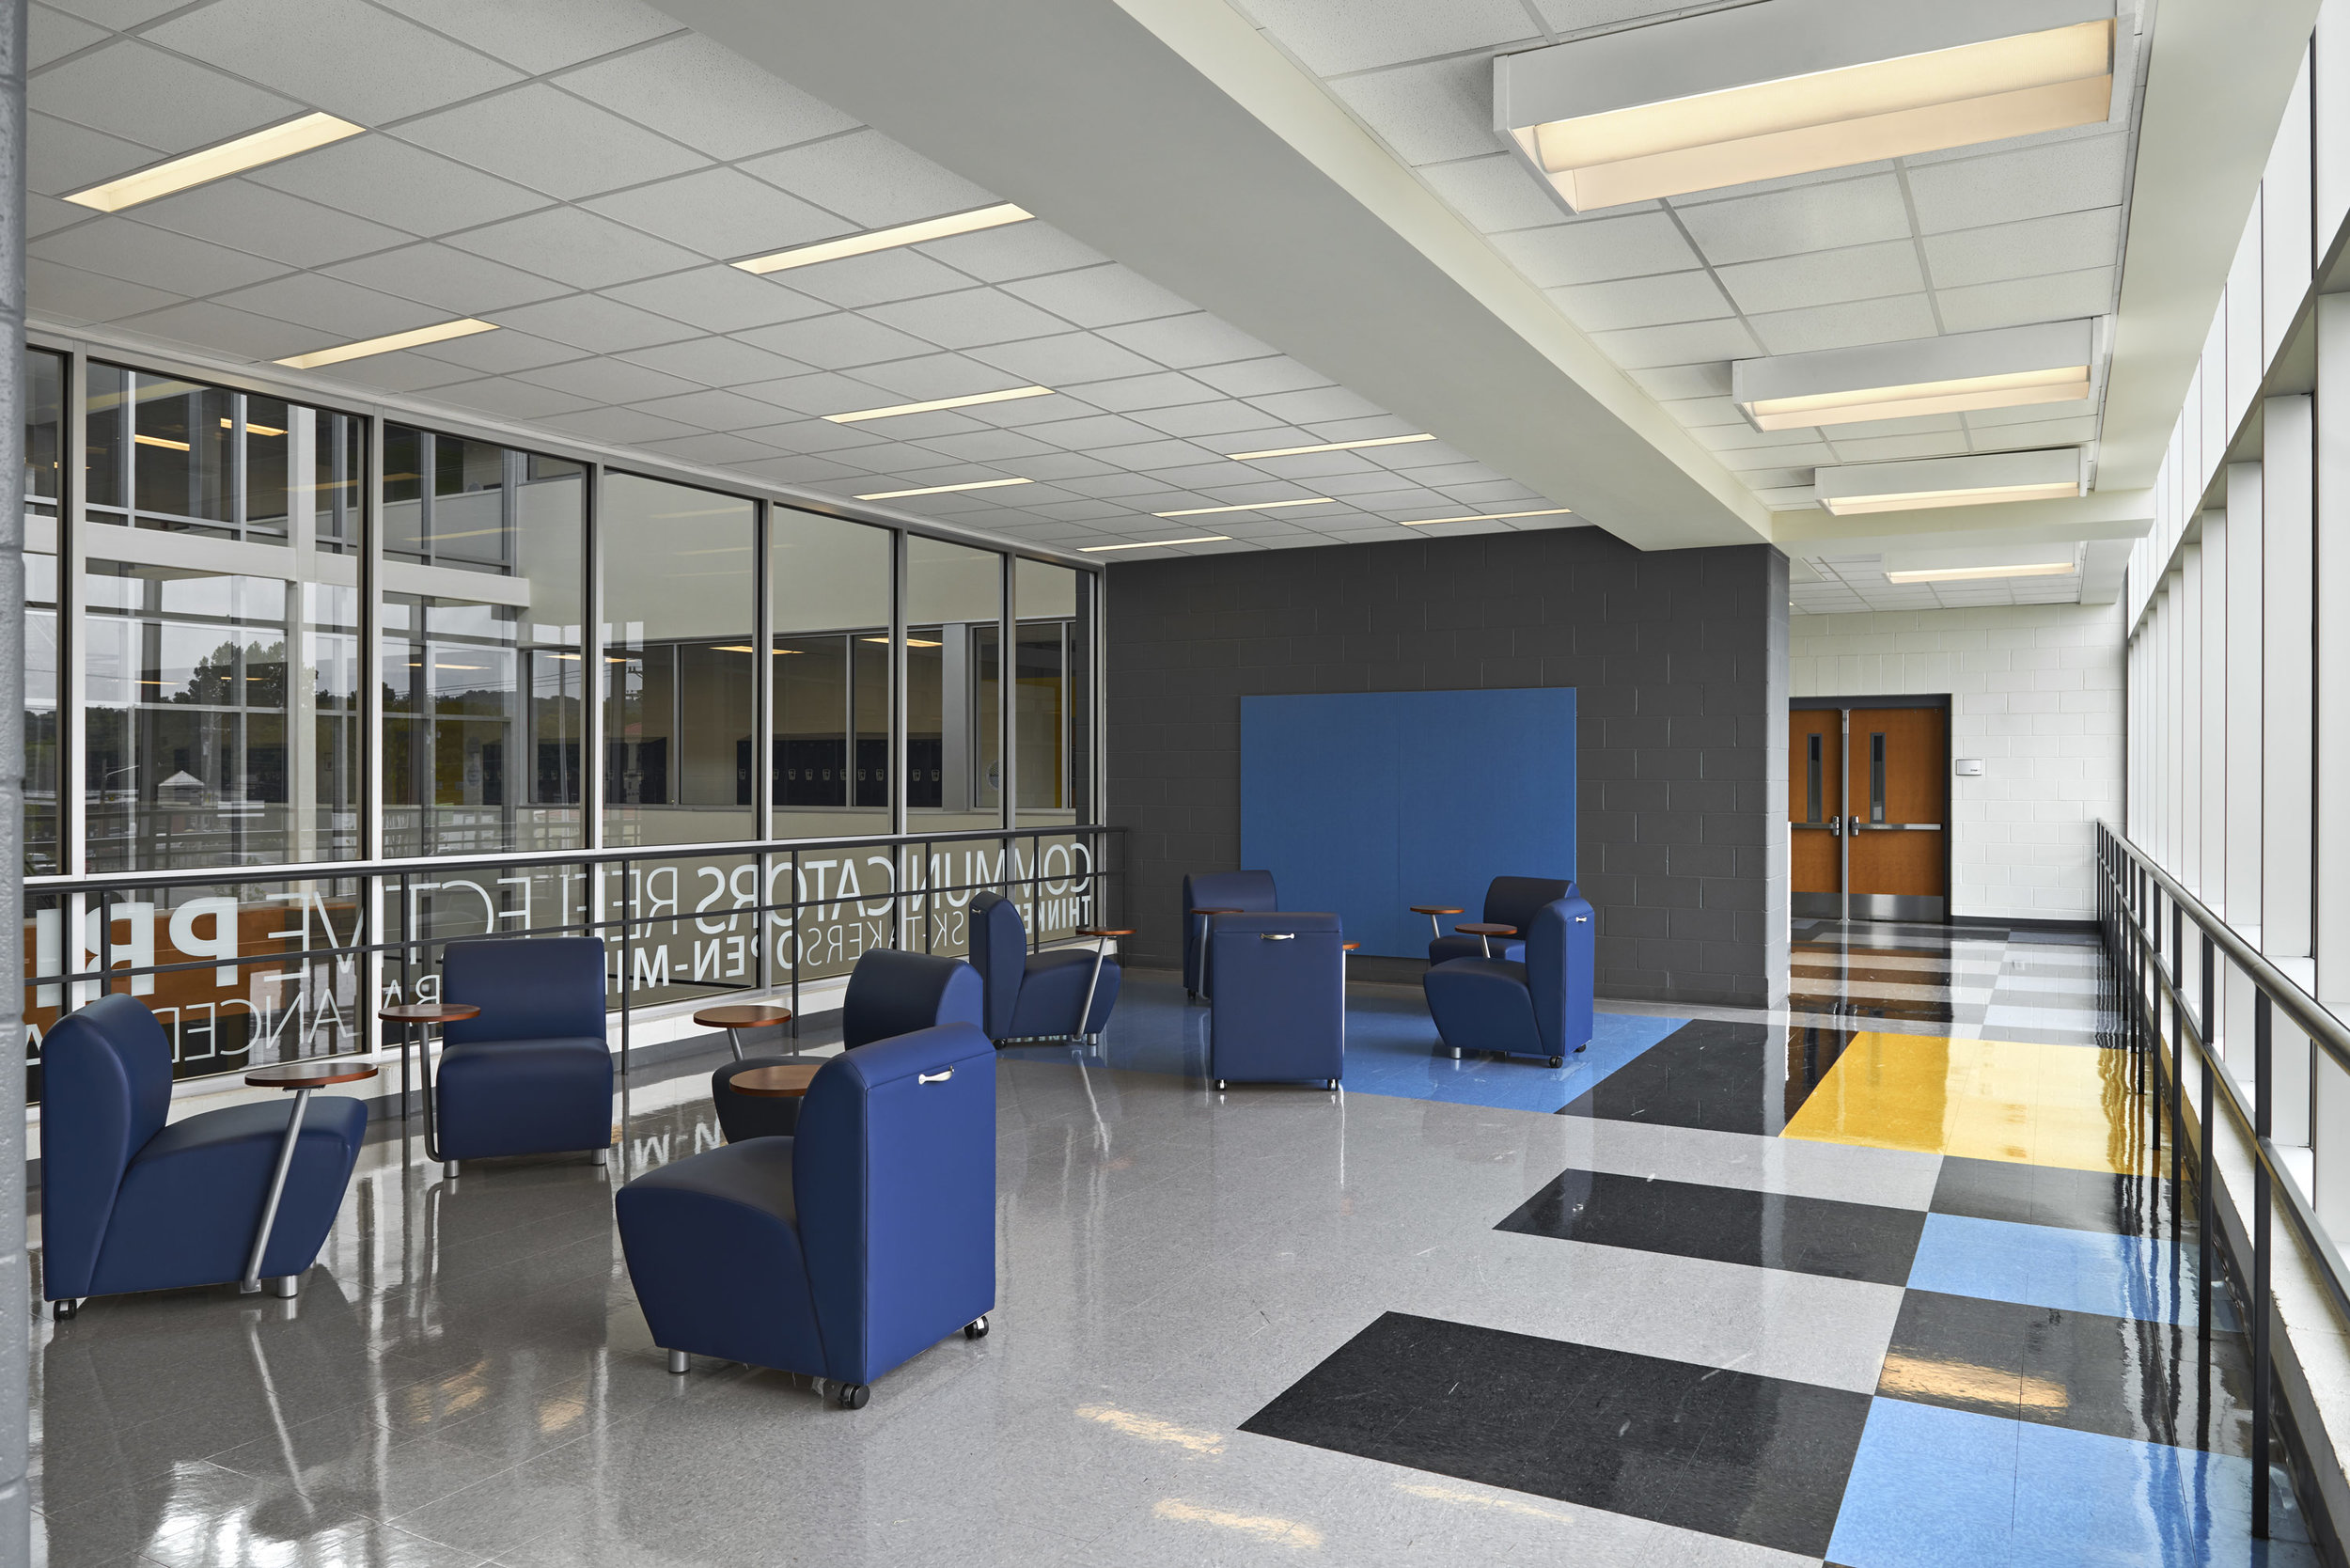 Goodlettsville-Middle-School-Shot-10-web.jpg